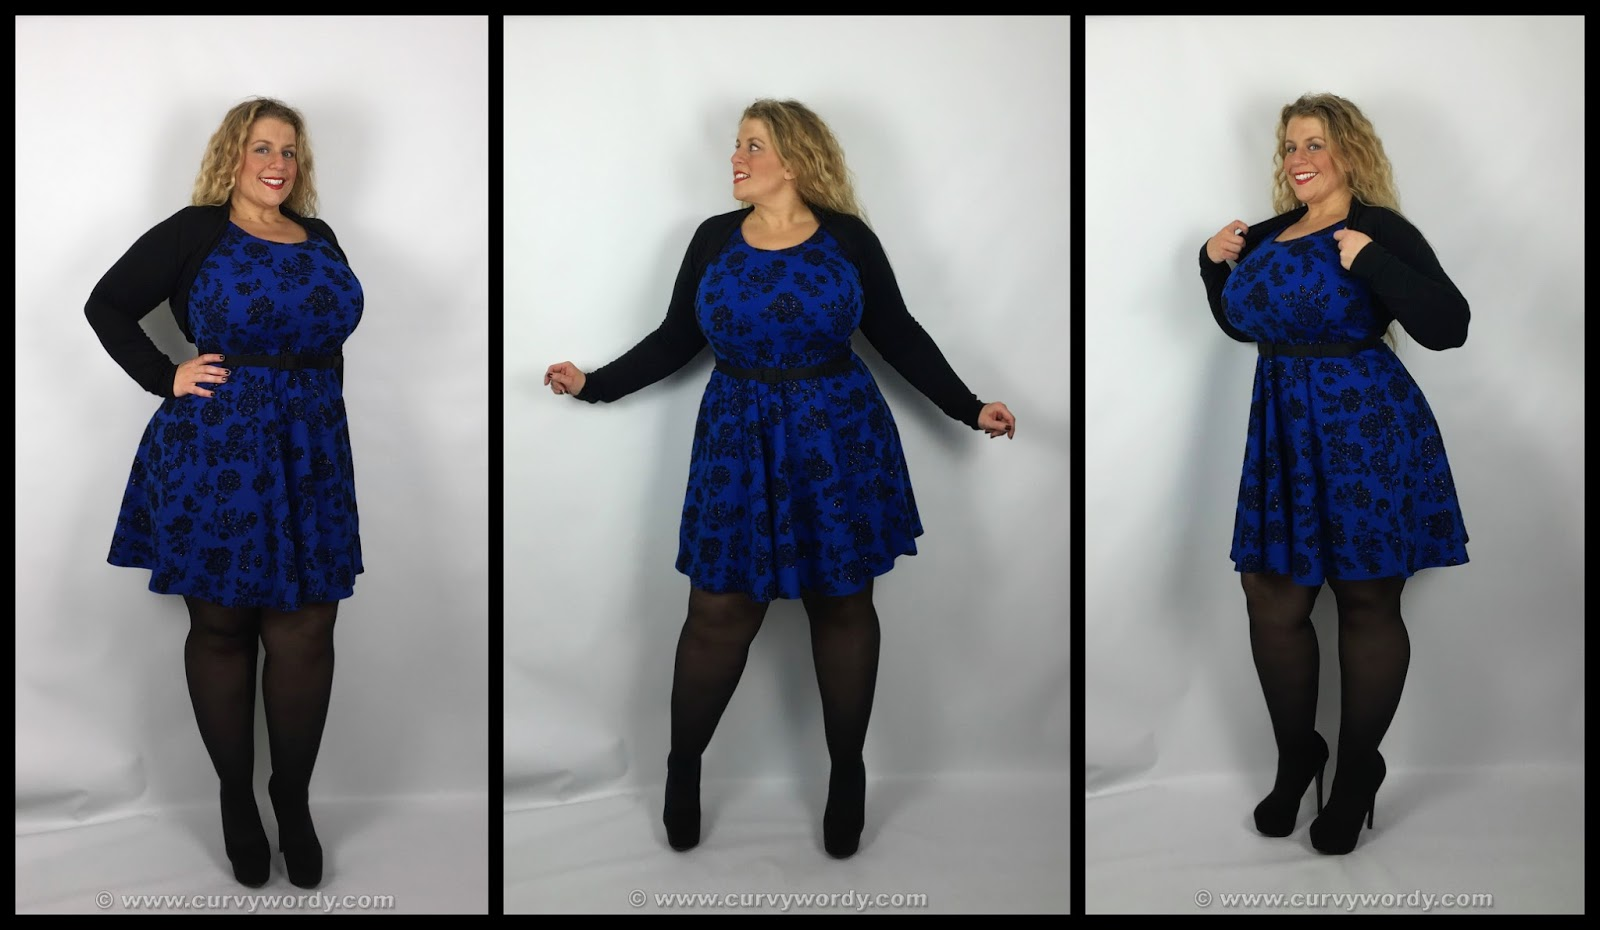 Curvy Wordy: Yours Clothing Glitter Flocked Skater Dress 18